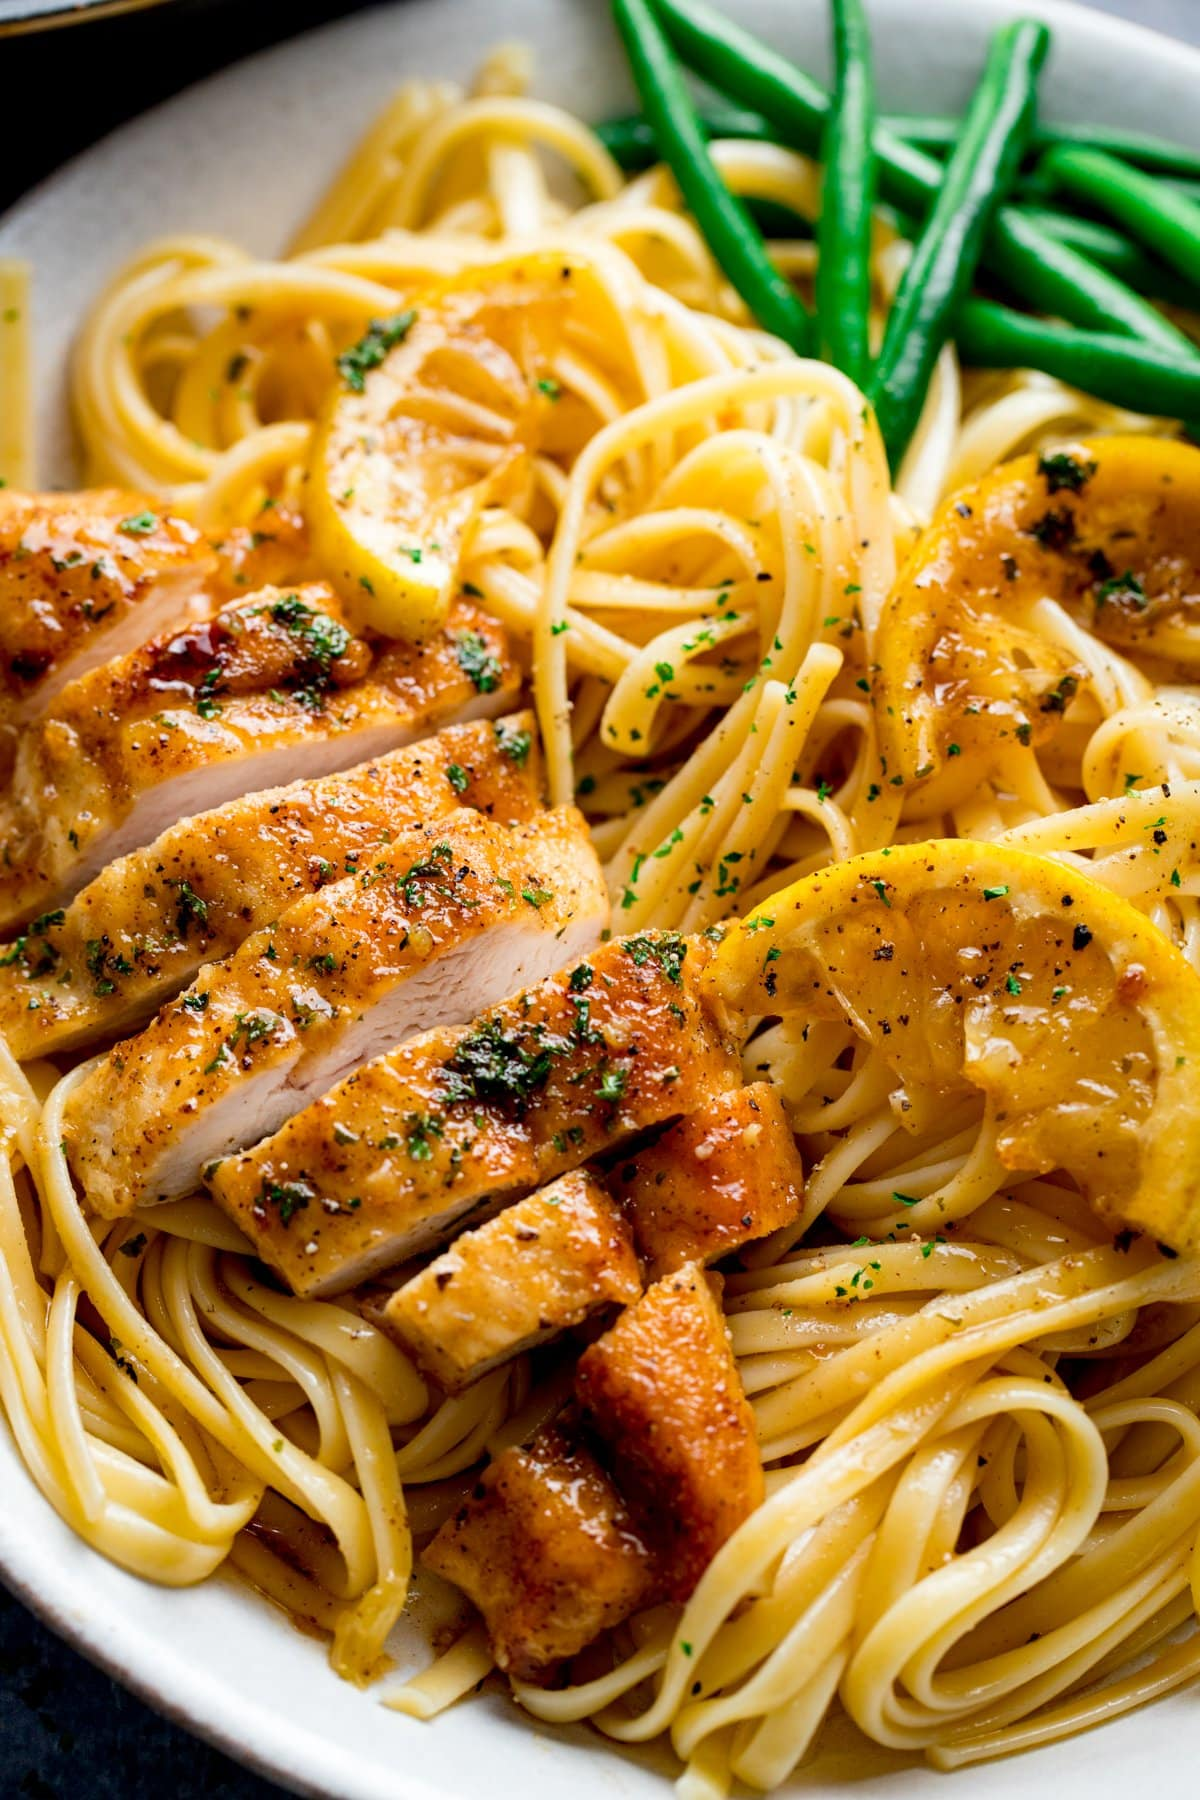 Sliced honey lemon chicken breast on a plate of linguine with green beans.